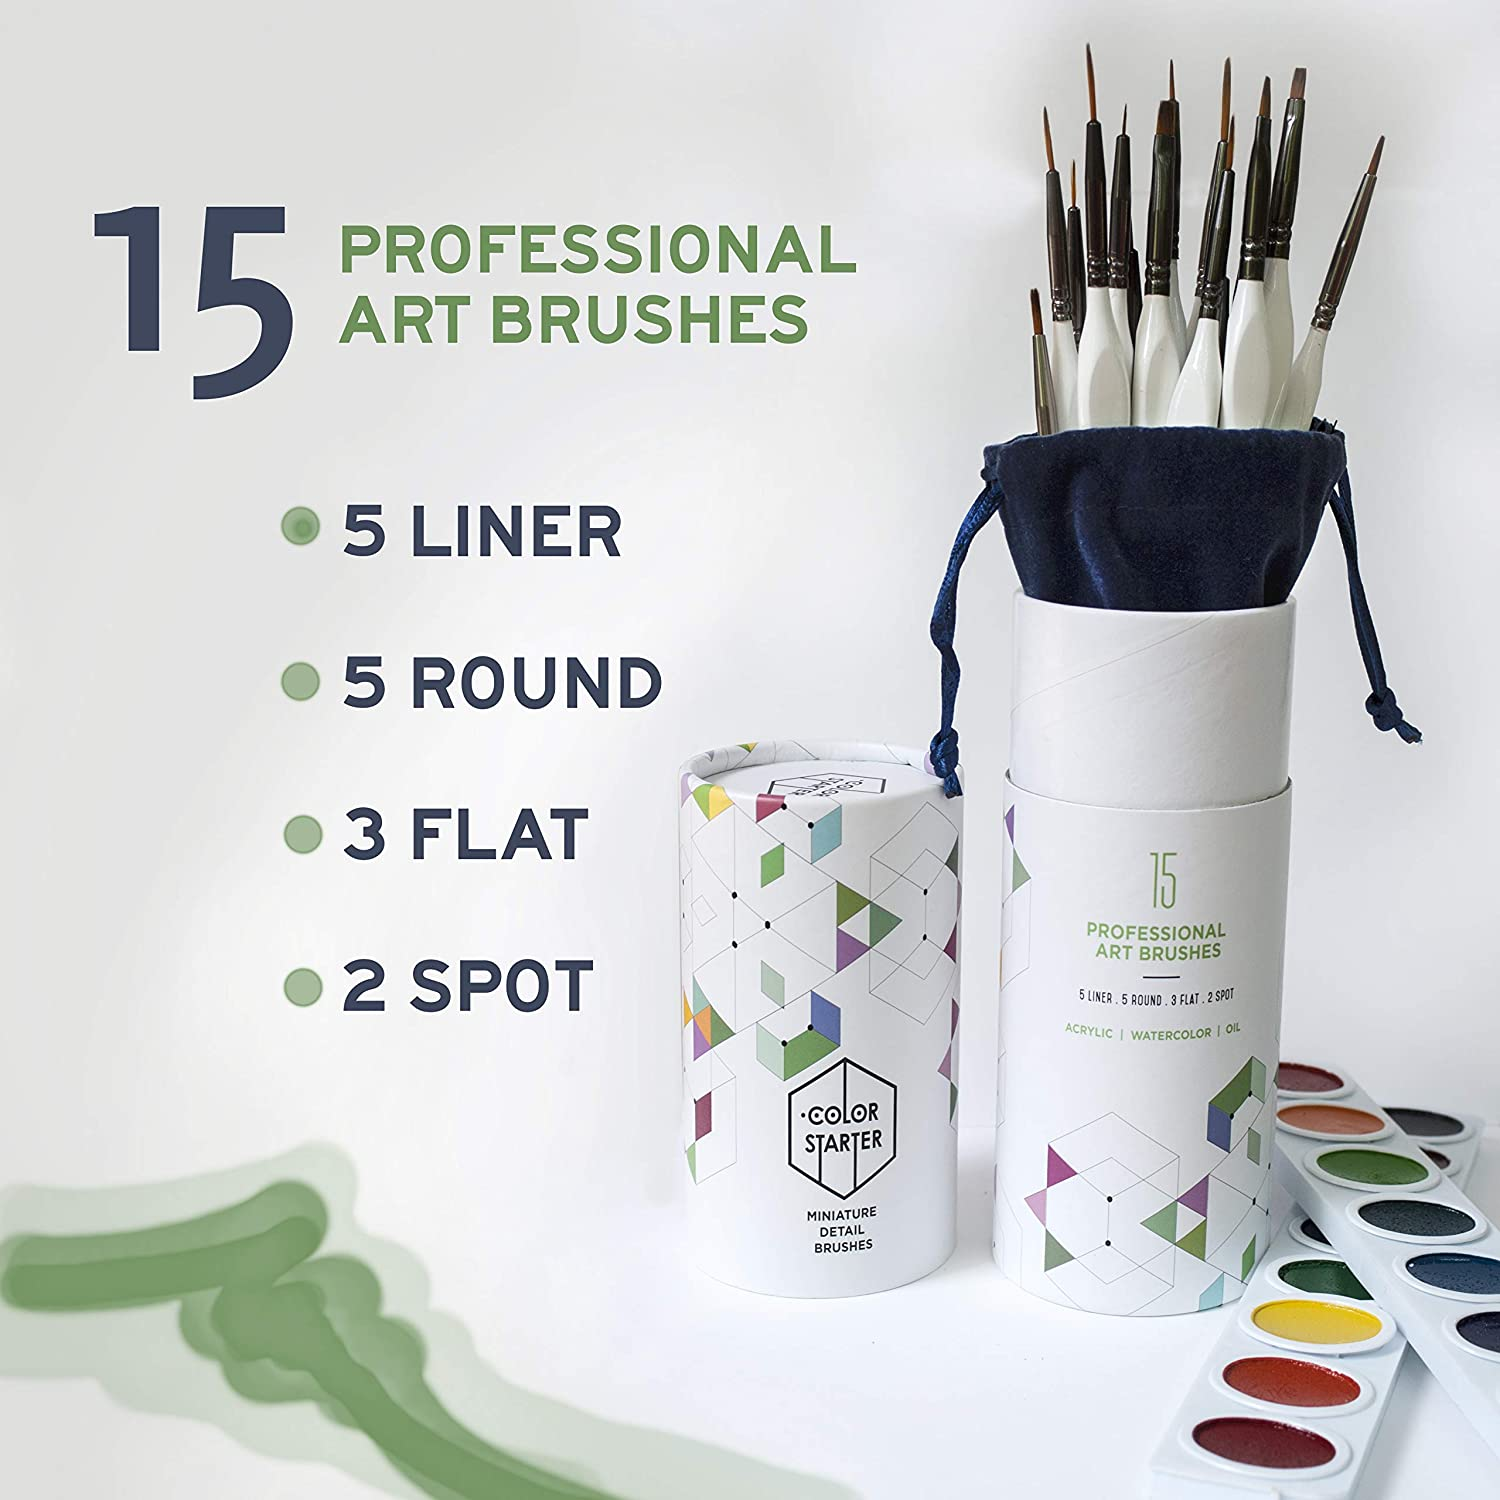 Oil Craft Watercolor Art Rock Painting by Color Starter Hobby Artist Paint by Number Acrylic Miniature Detail Paint Brushes -15 pc Fine Tip Painting Set with Ergonomic Handle-for Scale Modeling